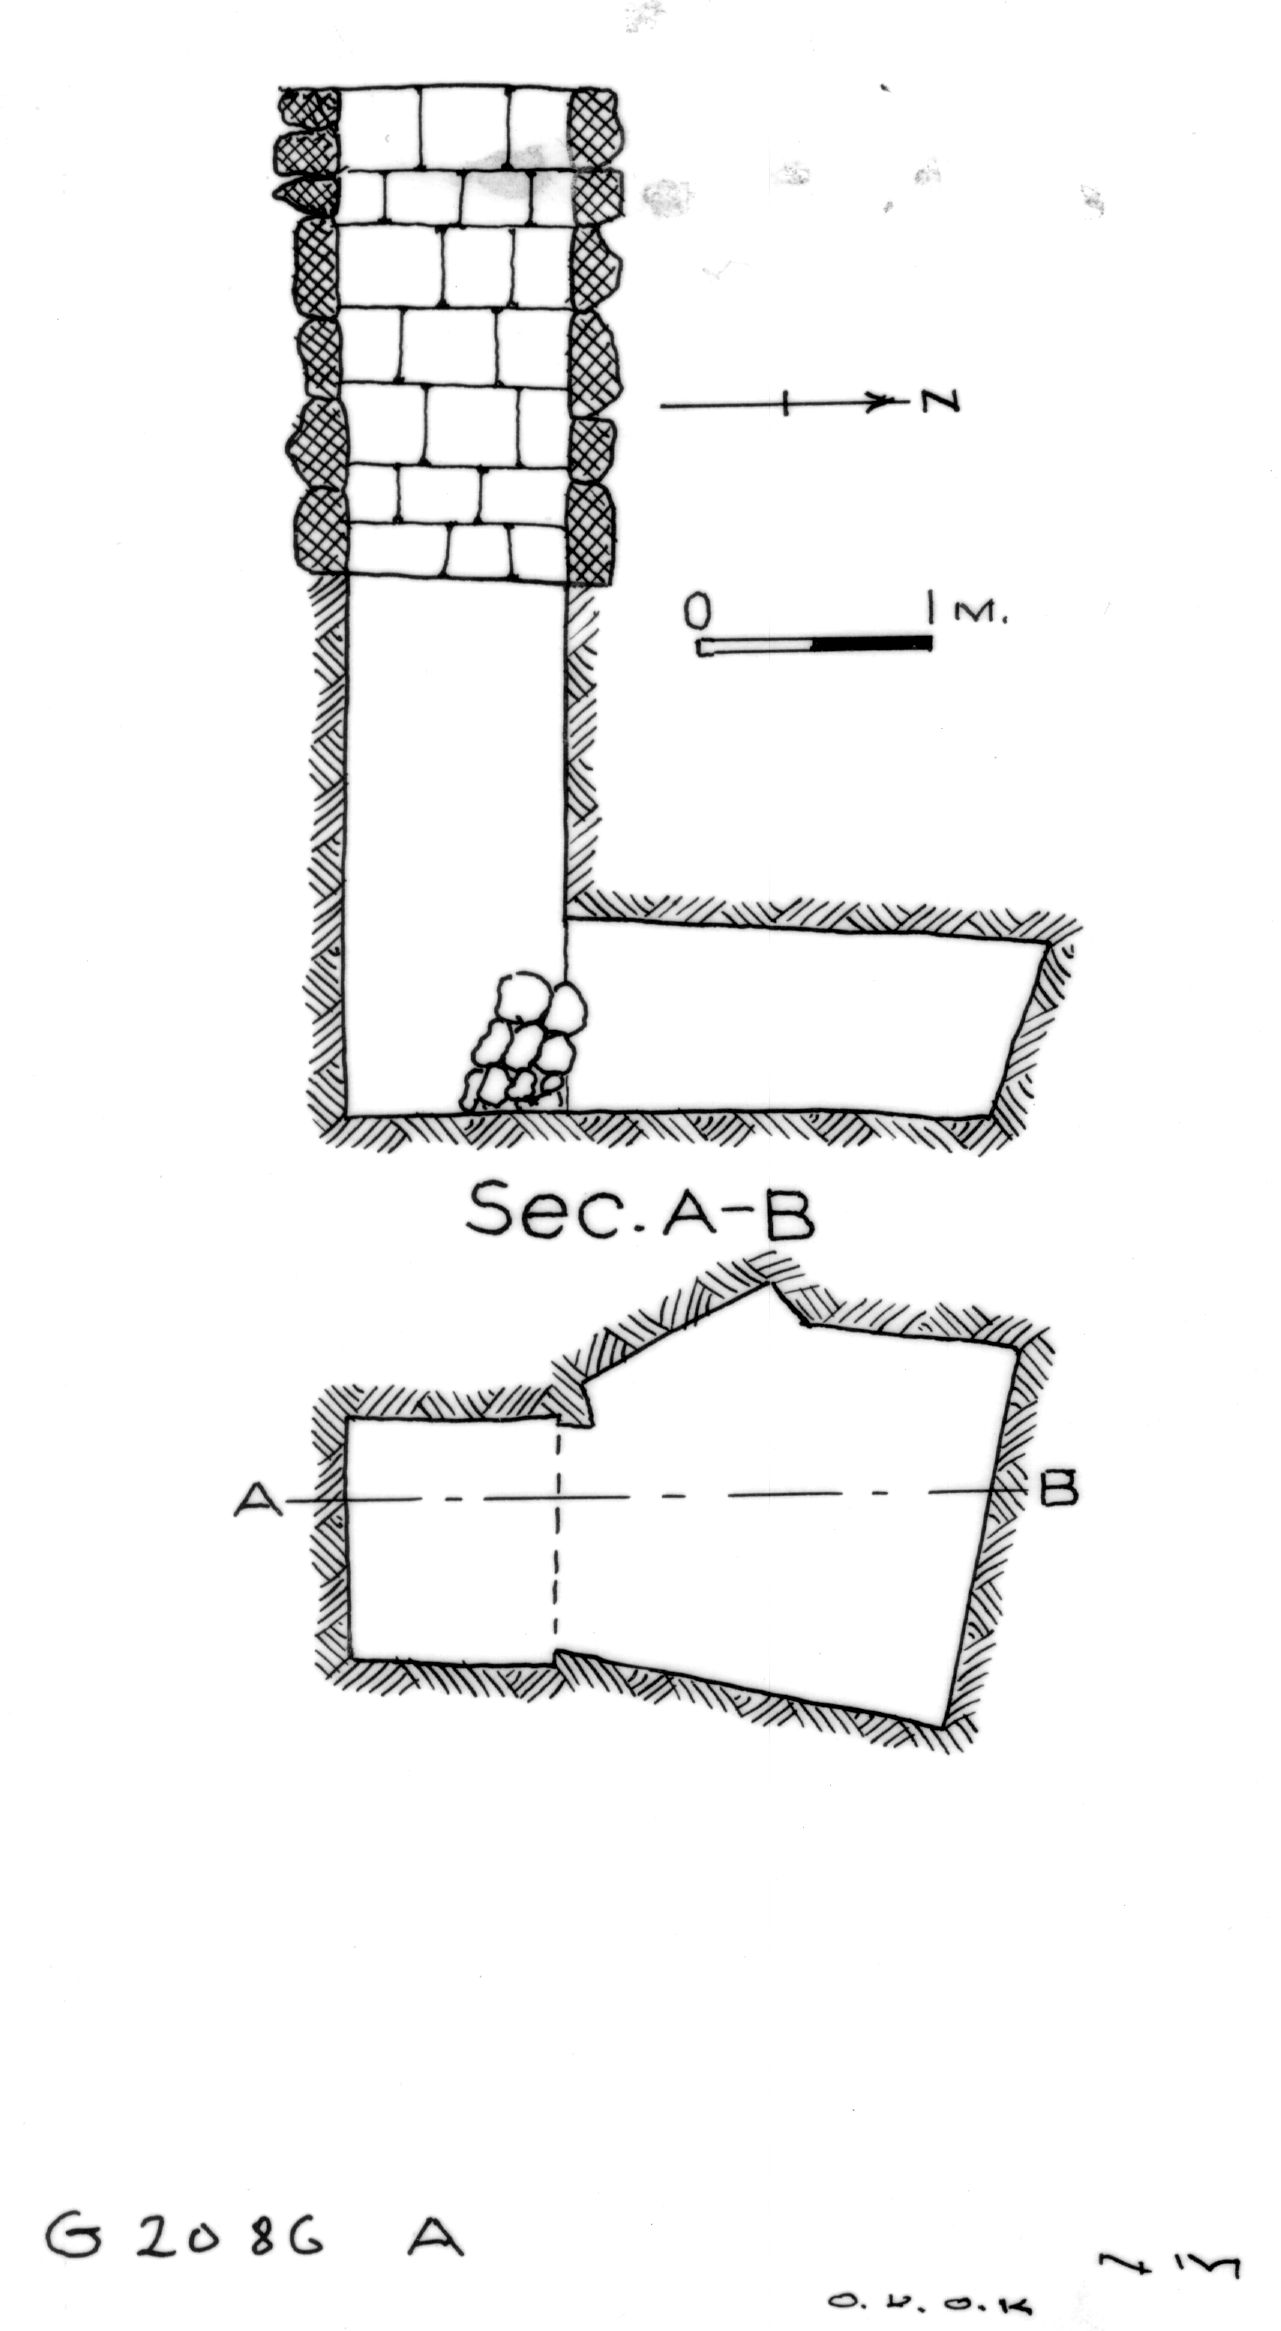 Maps and plans: G 2086, Shaft A